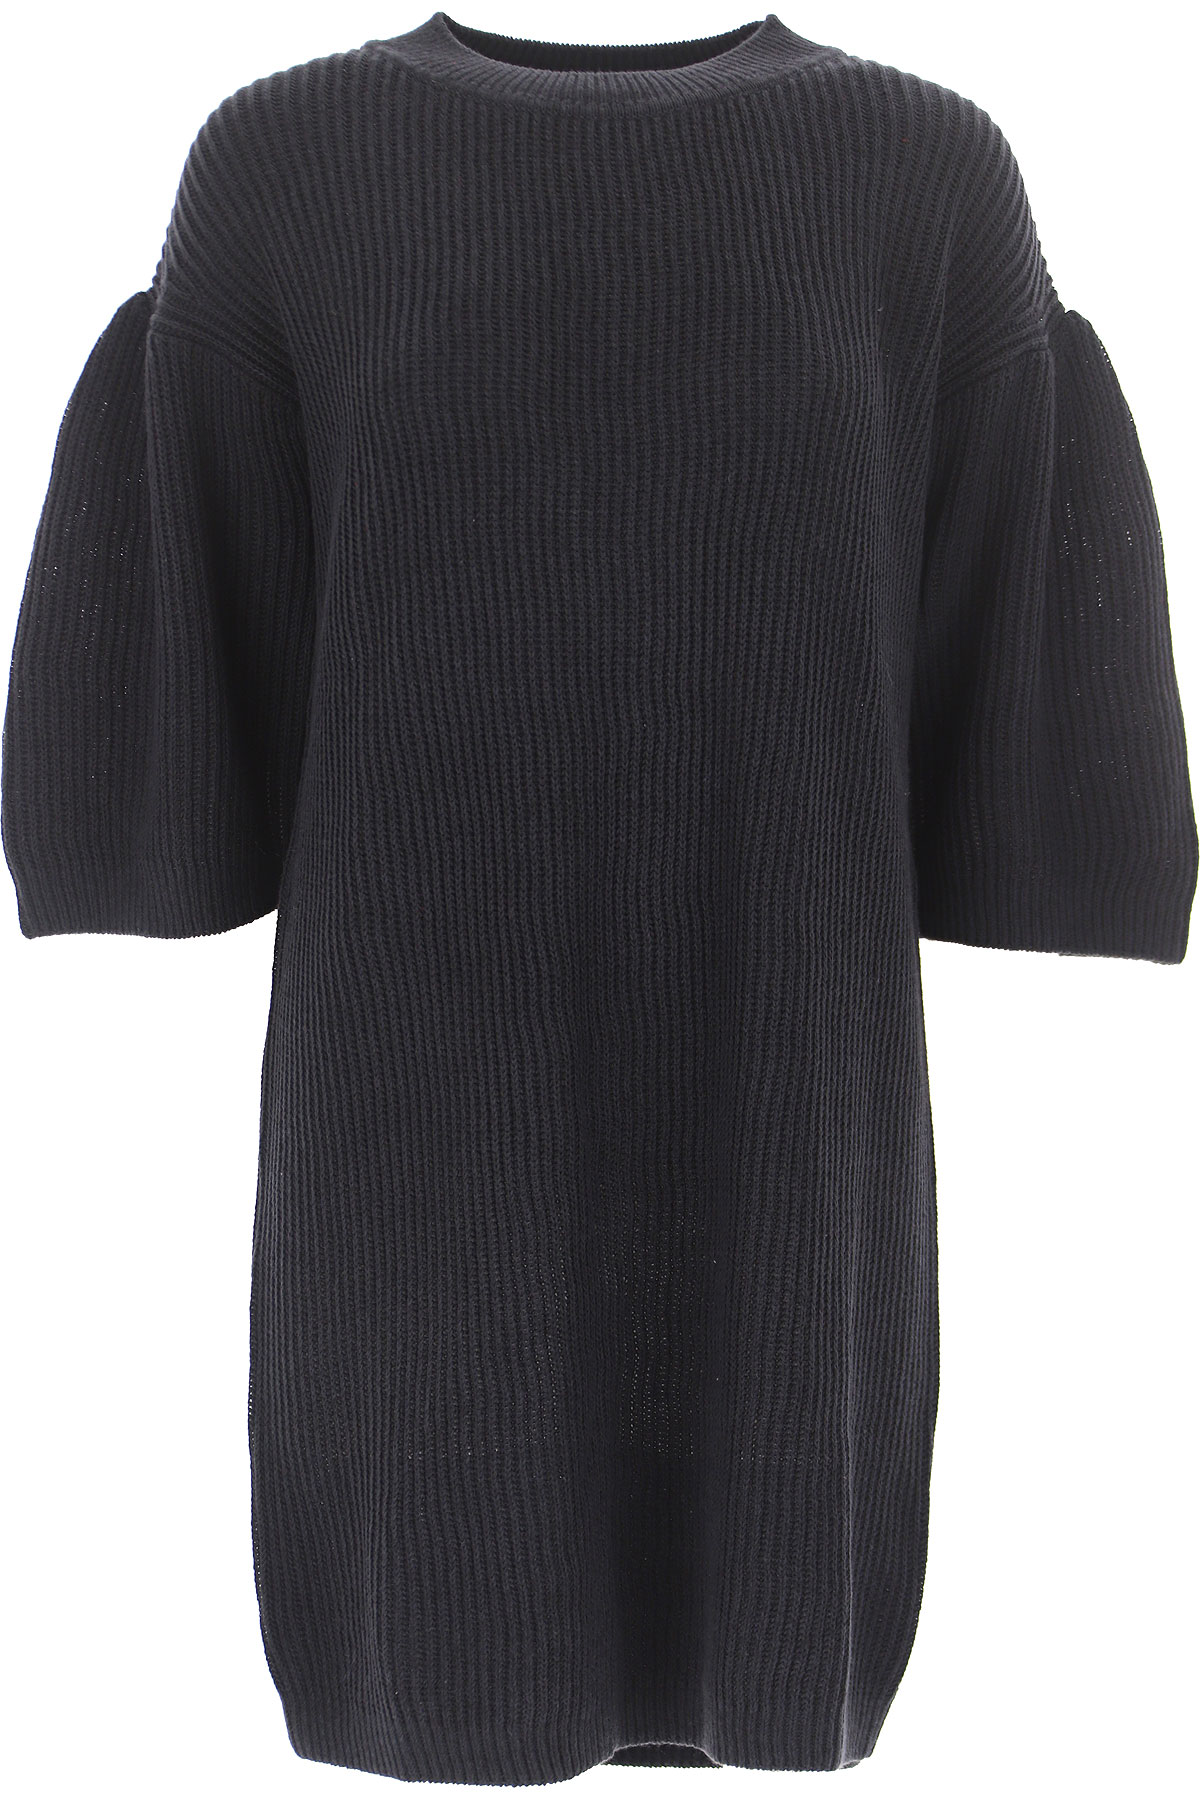 See By Chloe Dress for Women, Evening Cocktail Party On Sale, Black, linen, 2019, 2 6